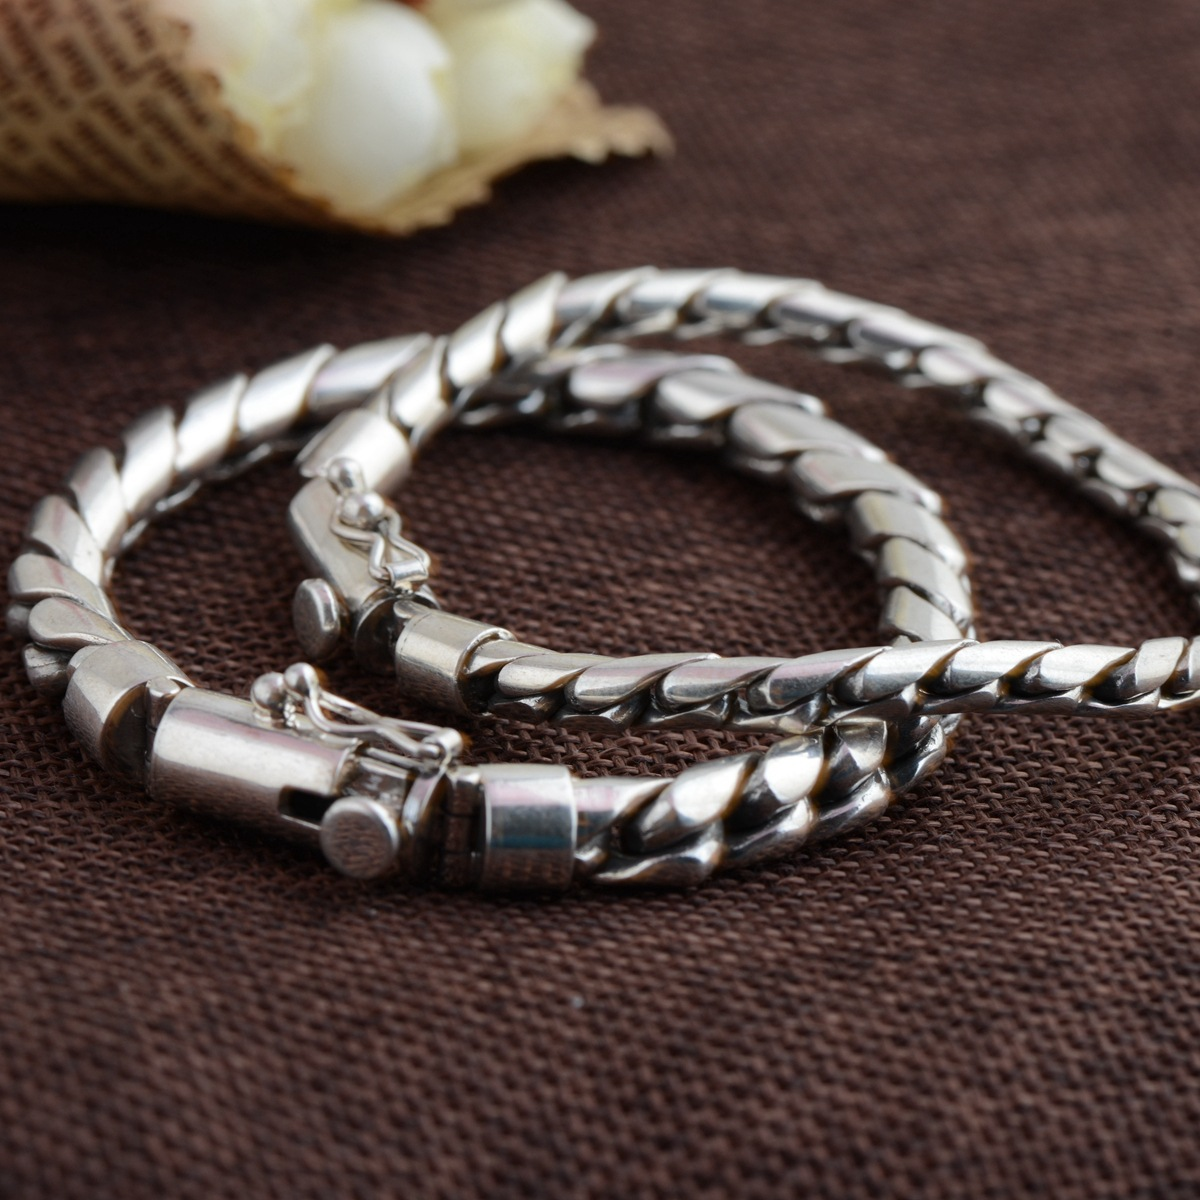 emperor wholesale jewelry line S925 silver bracelet with Thai silver male money process archaize style The new fashionemperor wholesale jewelry line S925 silver bracelet with Thai silver male money process archaize style The new fashion